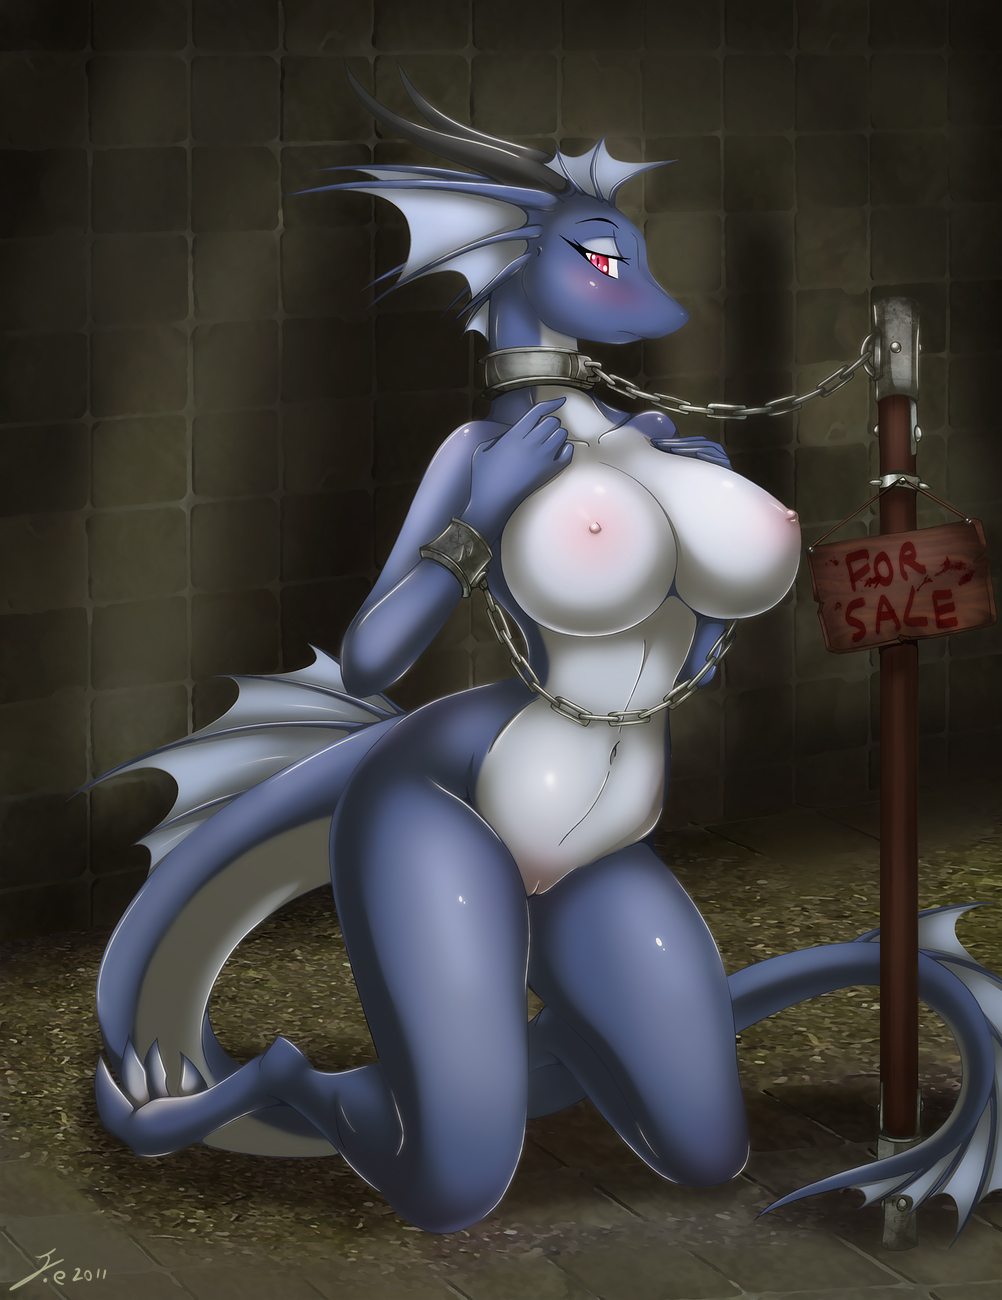 Big boobed dragon furry pics fucks fetish girlfriend